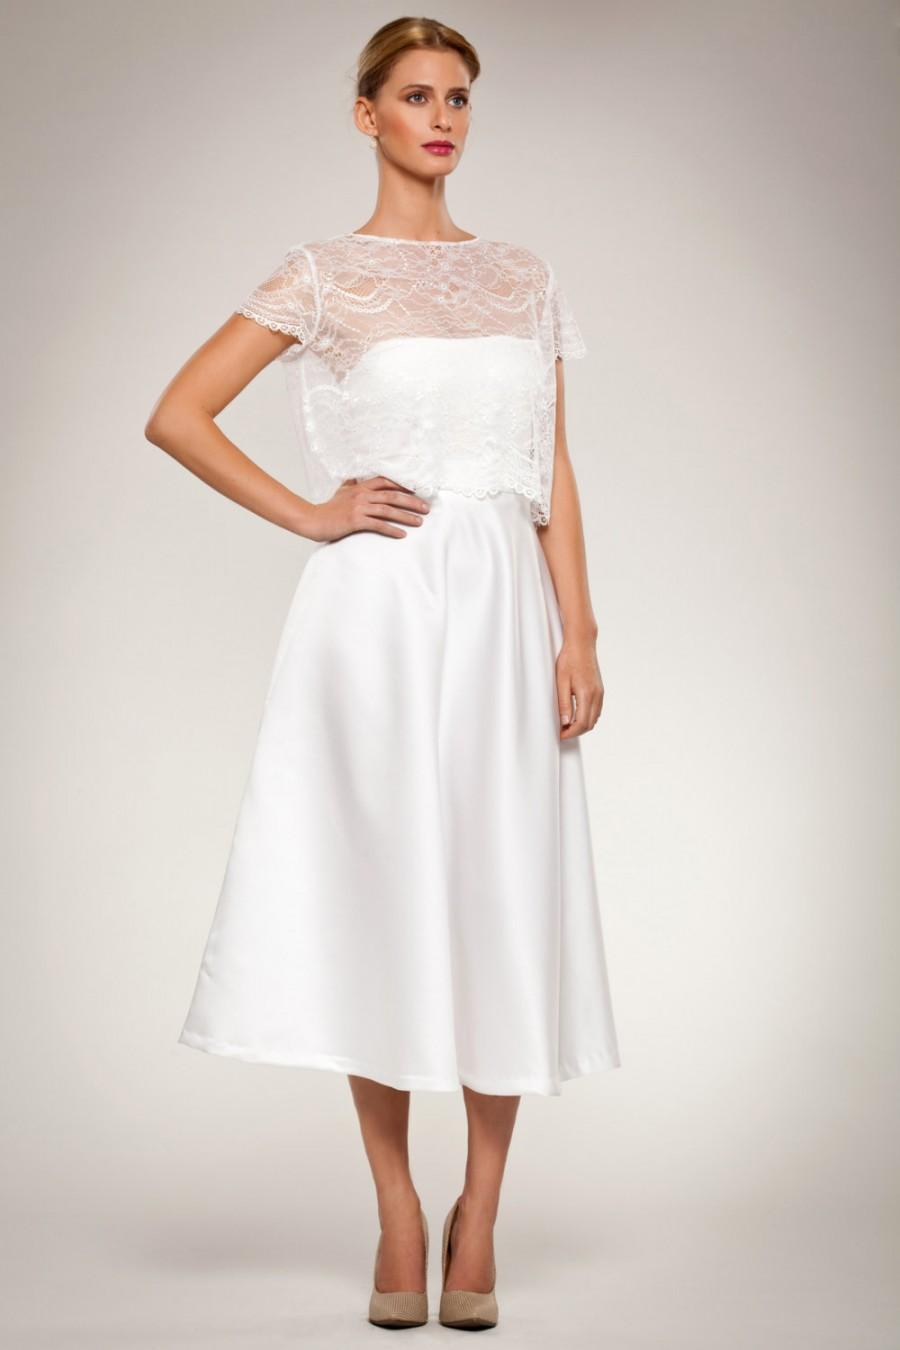 Mariage - Wedding Gown Dress Set- Cropped Lace Short Sleeve Top with Scalloped Edges, Full Calf Length Satin Skirt Mod Romantic Custom Made Strapless